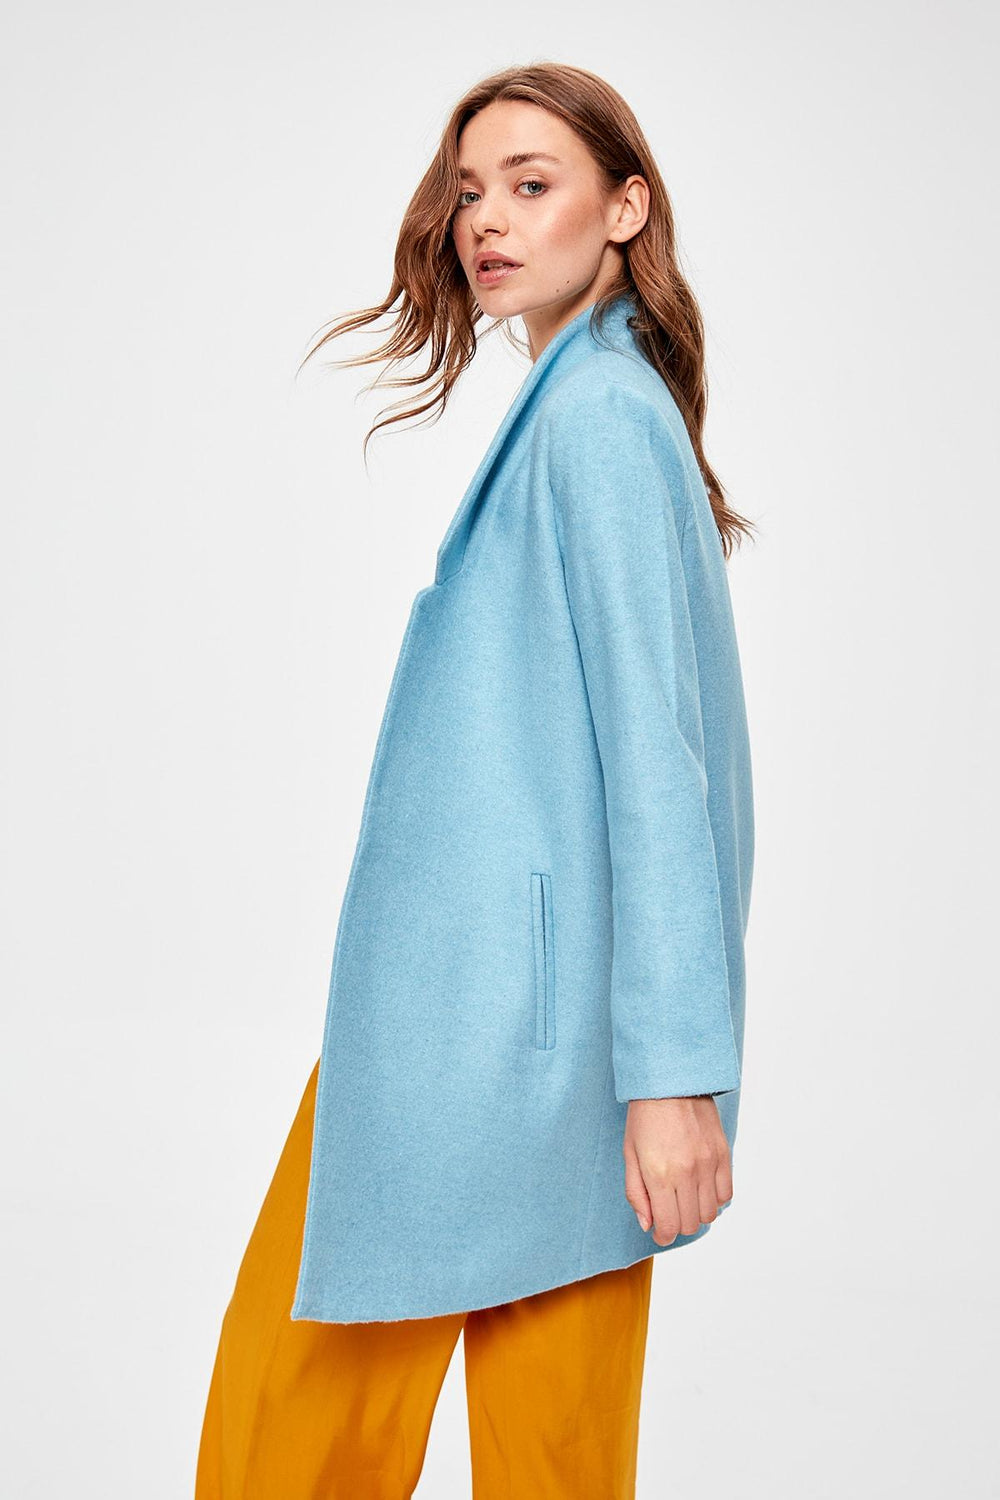 Blue Stamp Coat - Top Maxy